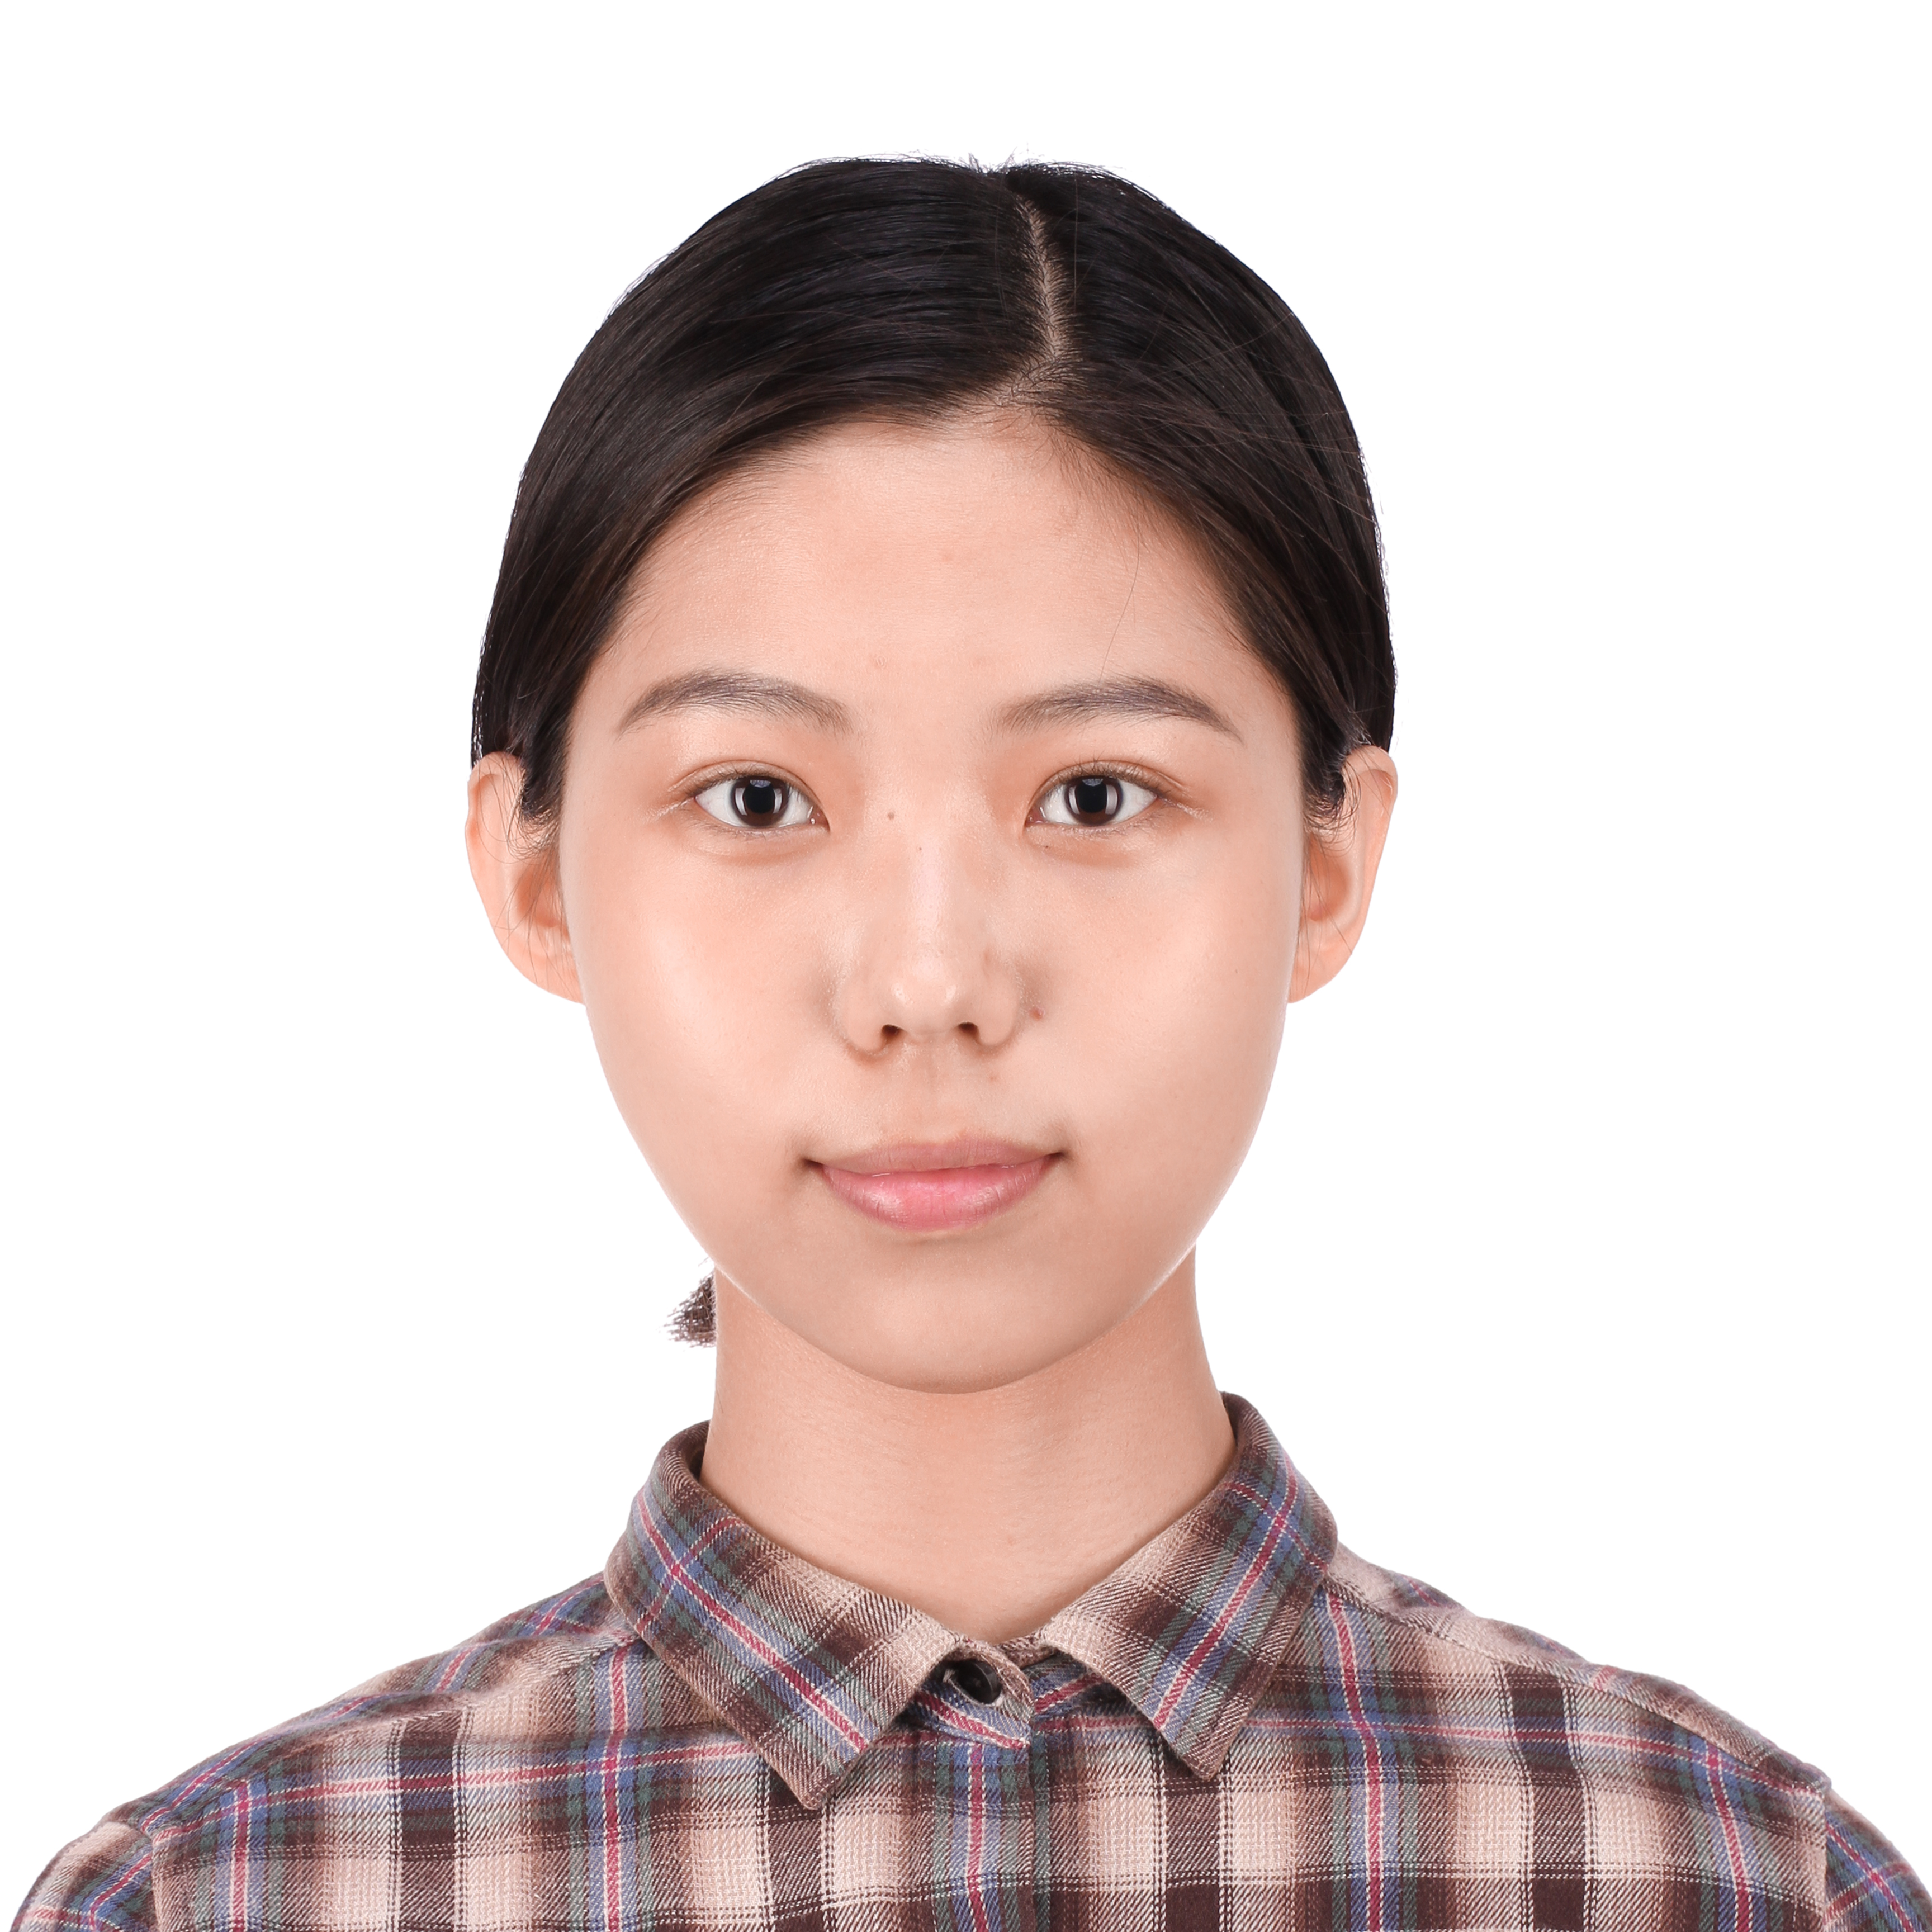 Photograph of Peiwen Xing